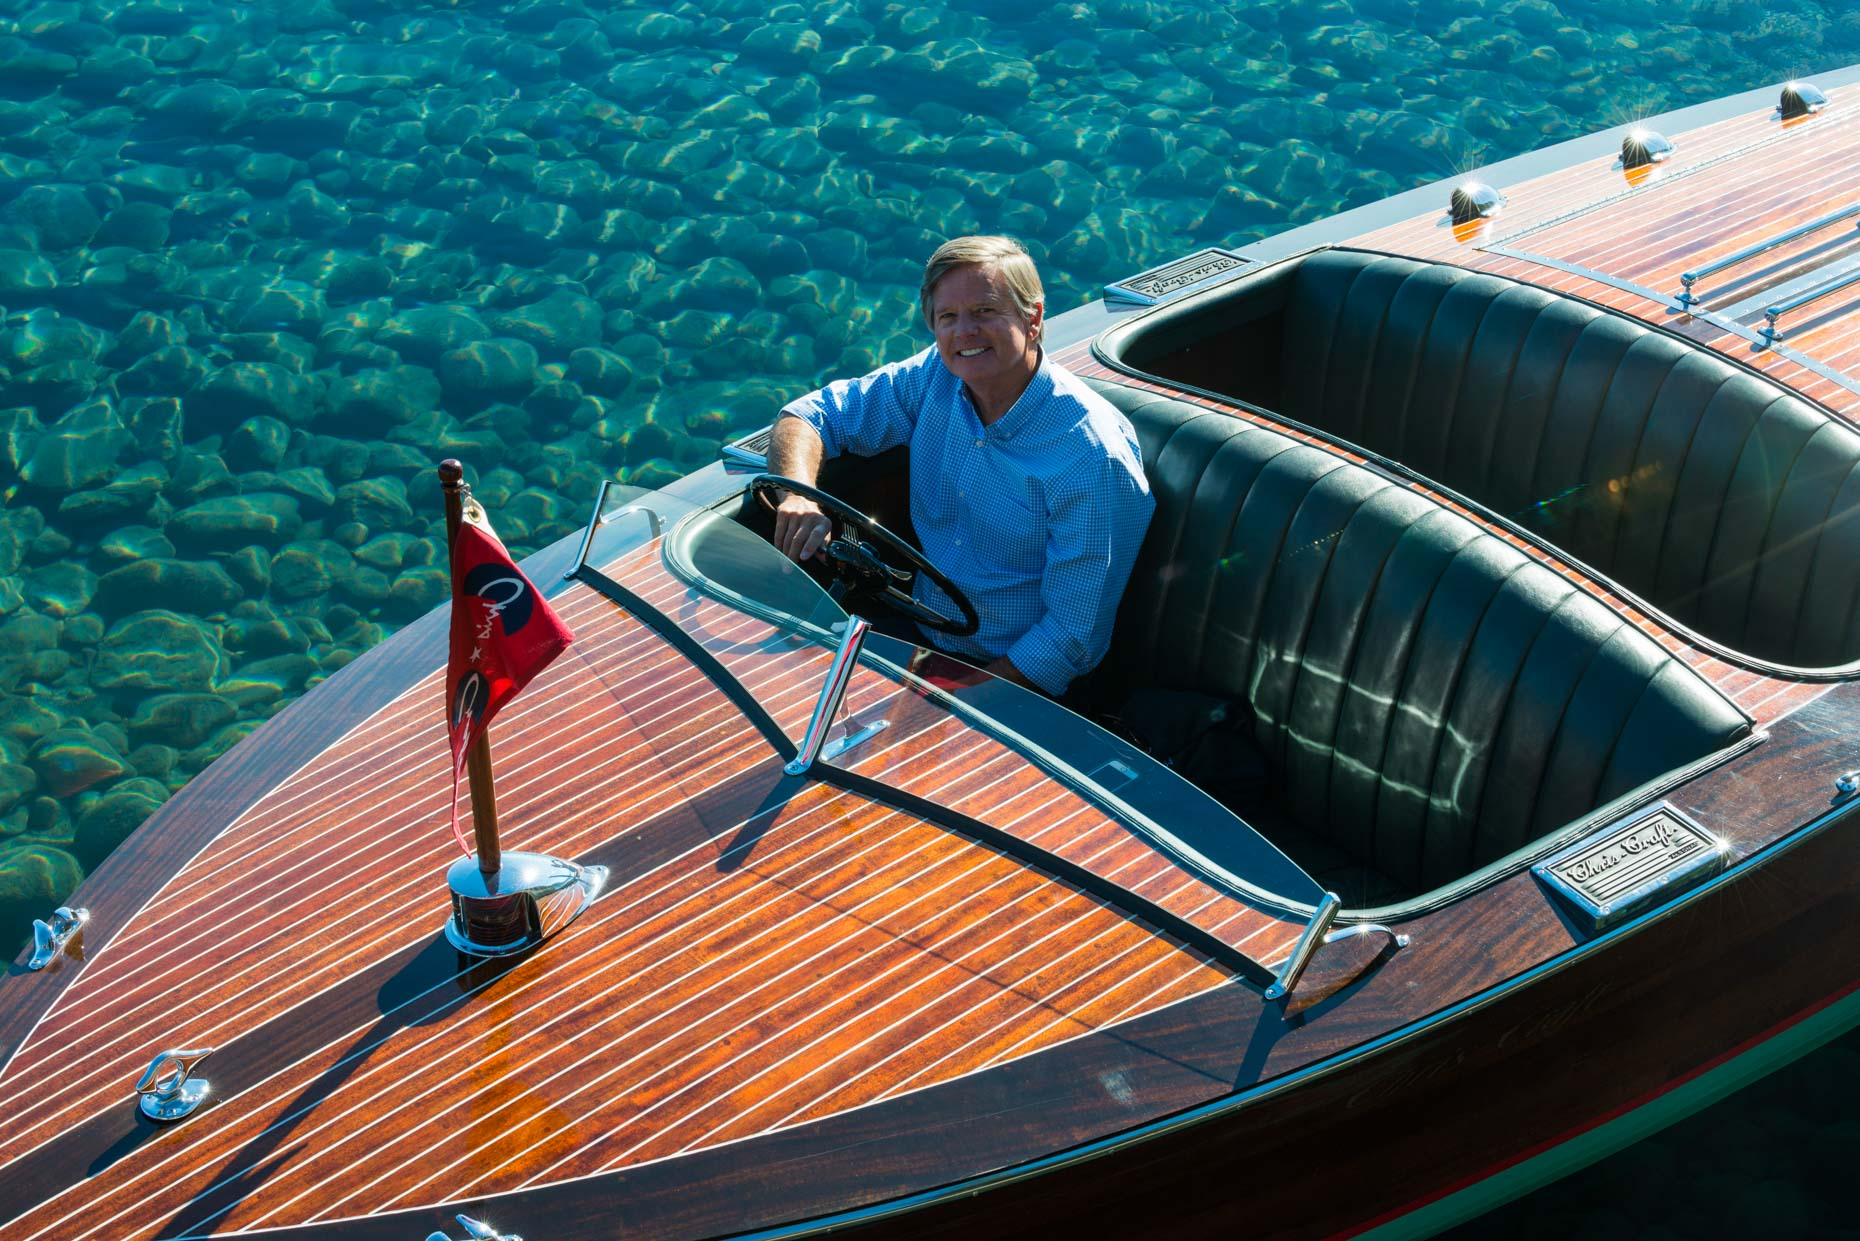 Rick Brown In His Wooden Boat - Lake Tahoe, California